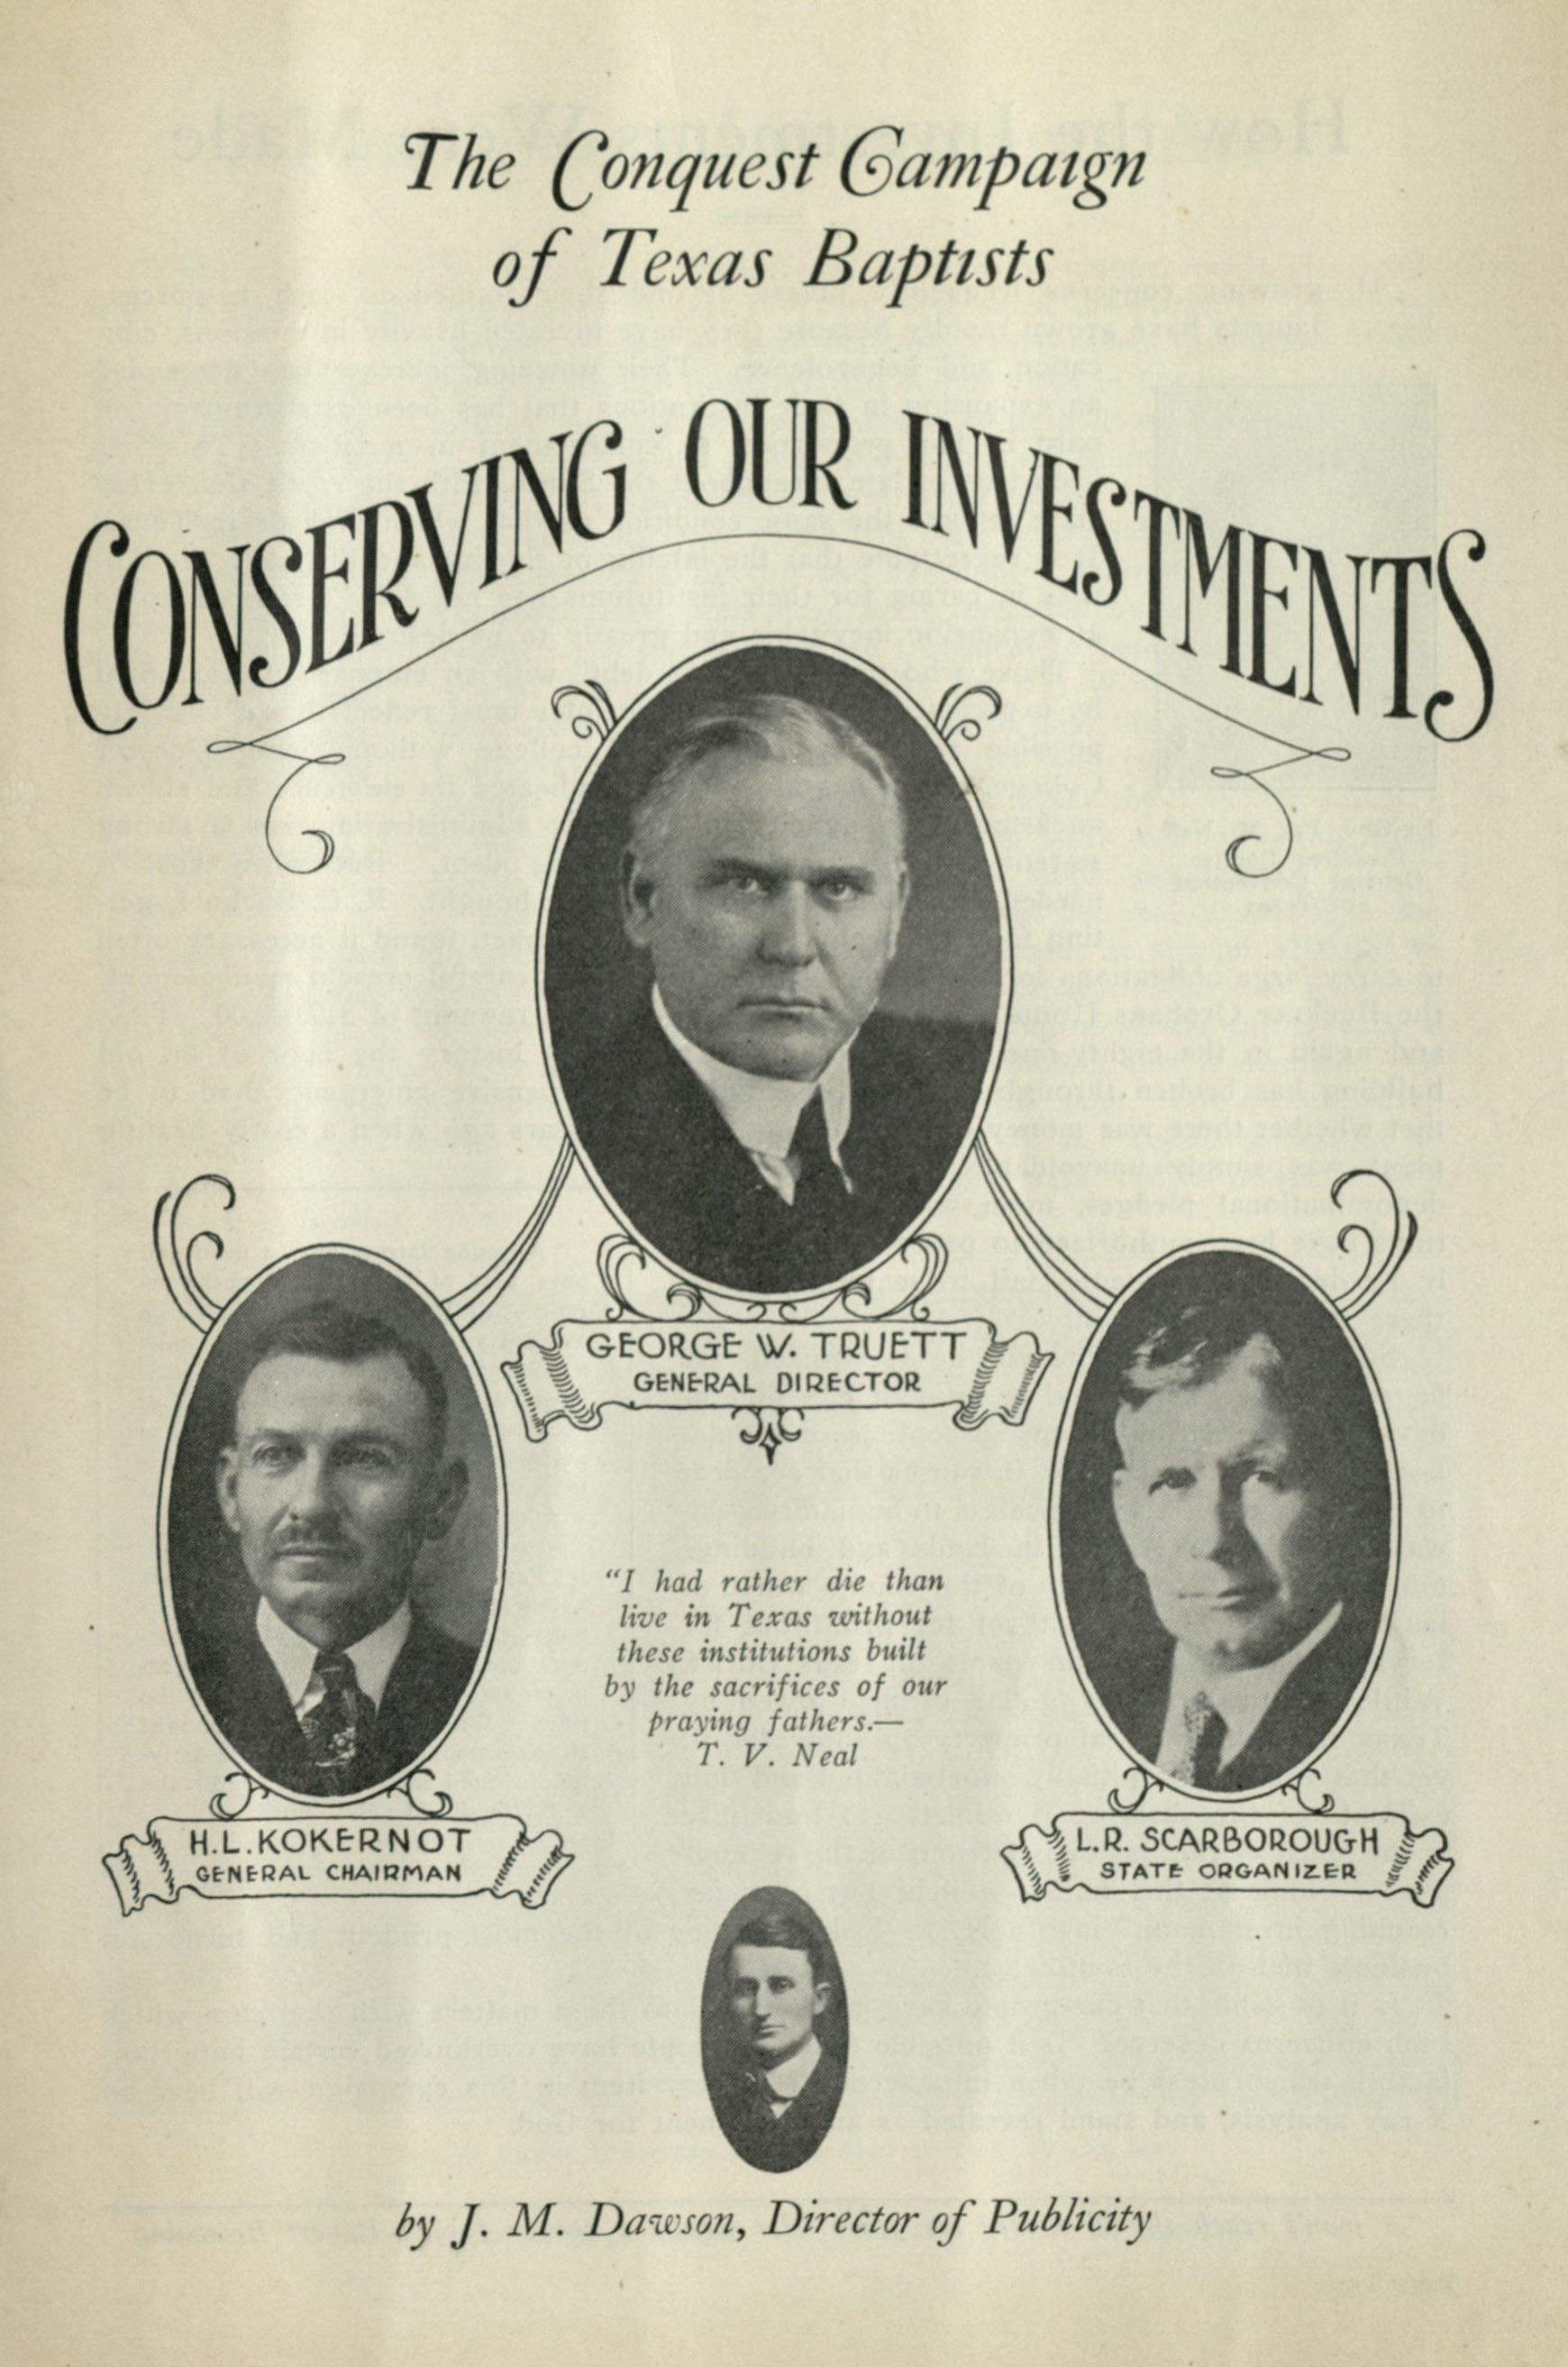 """Concerning Our Investments"" Texas Baptist fundraising pamphlet, circa 1926"